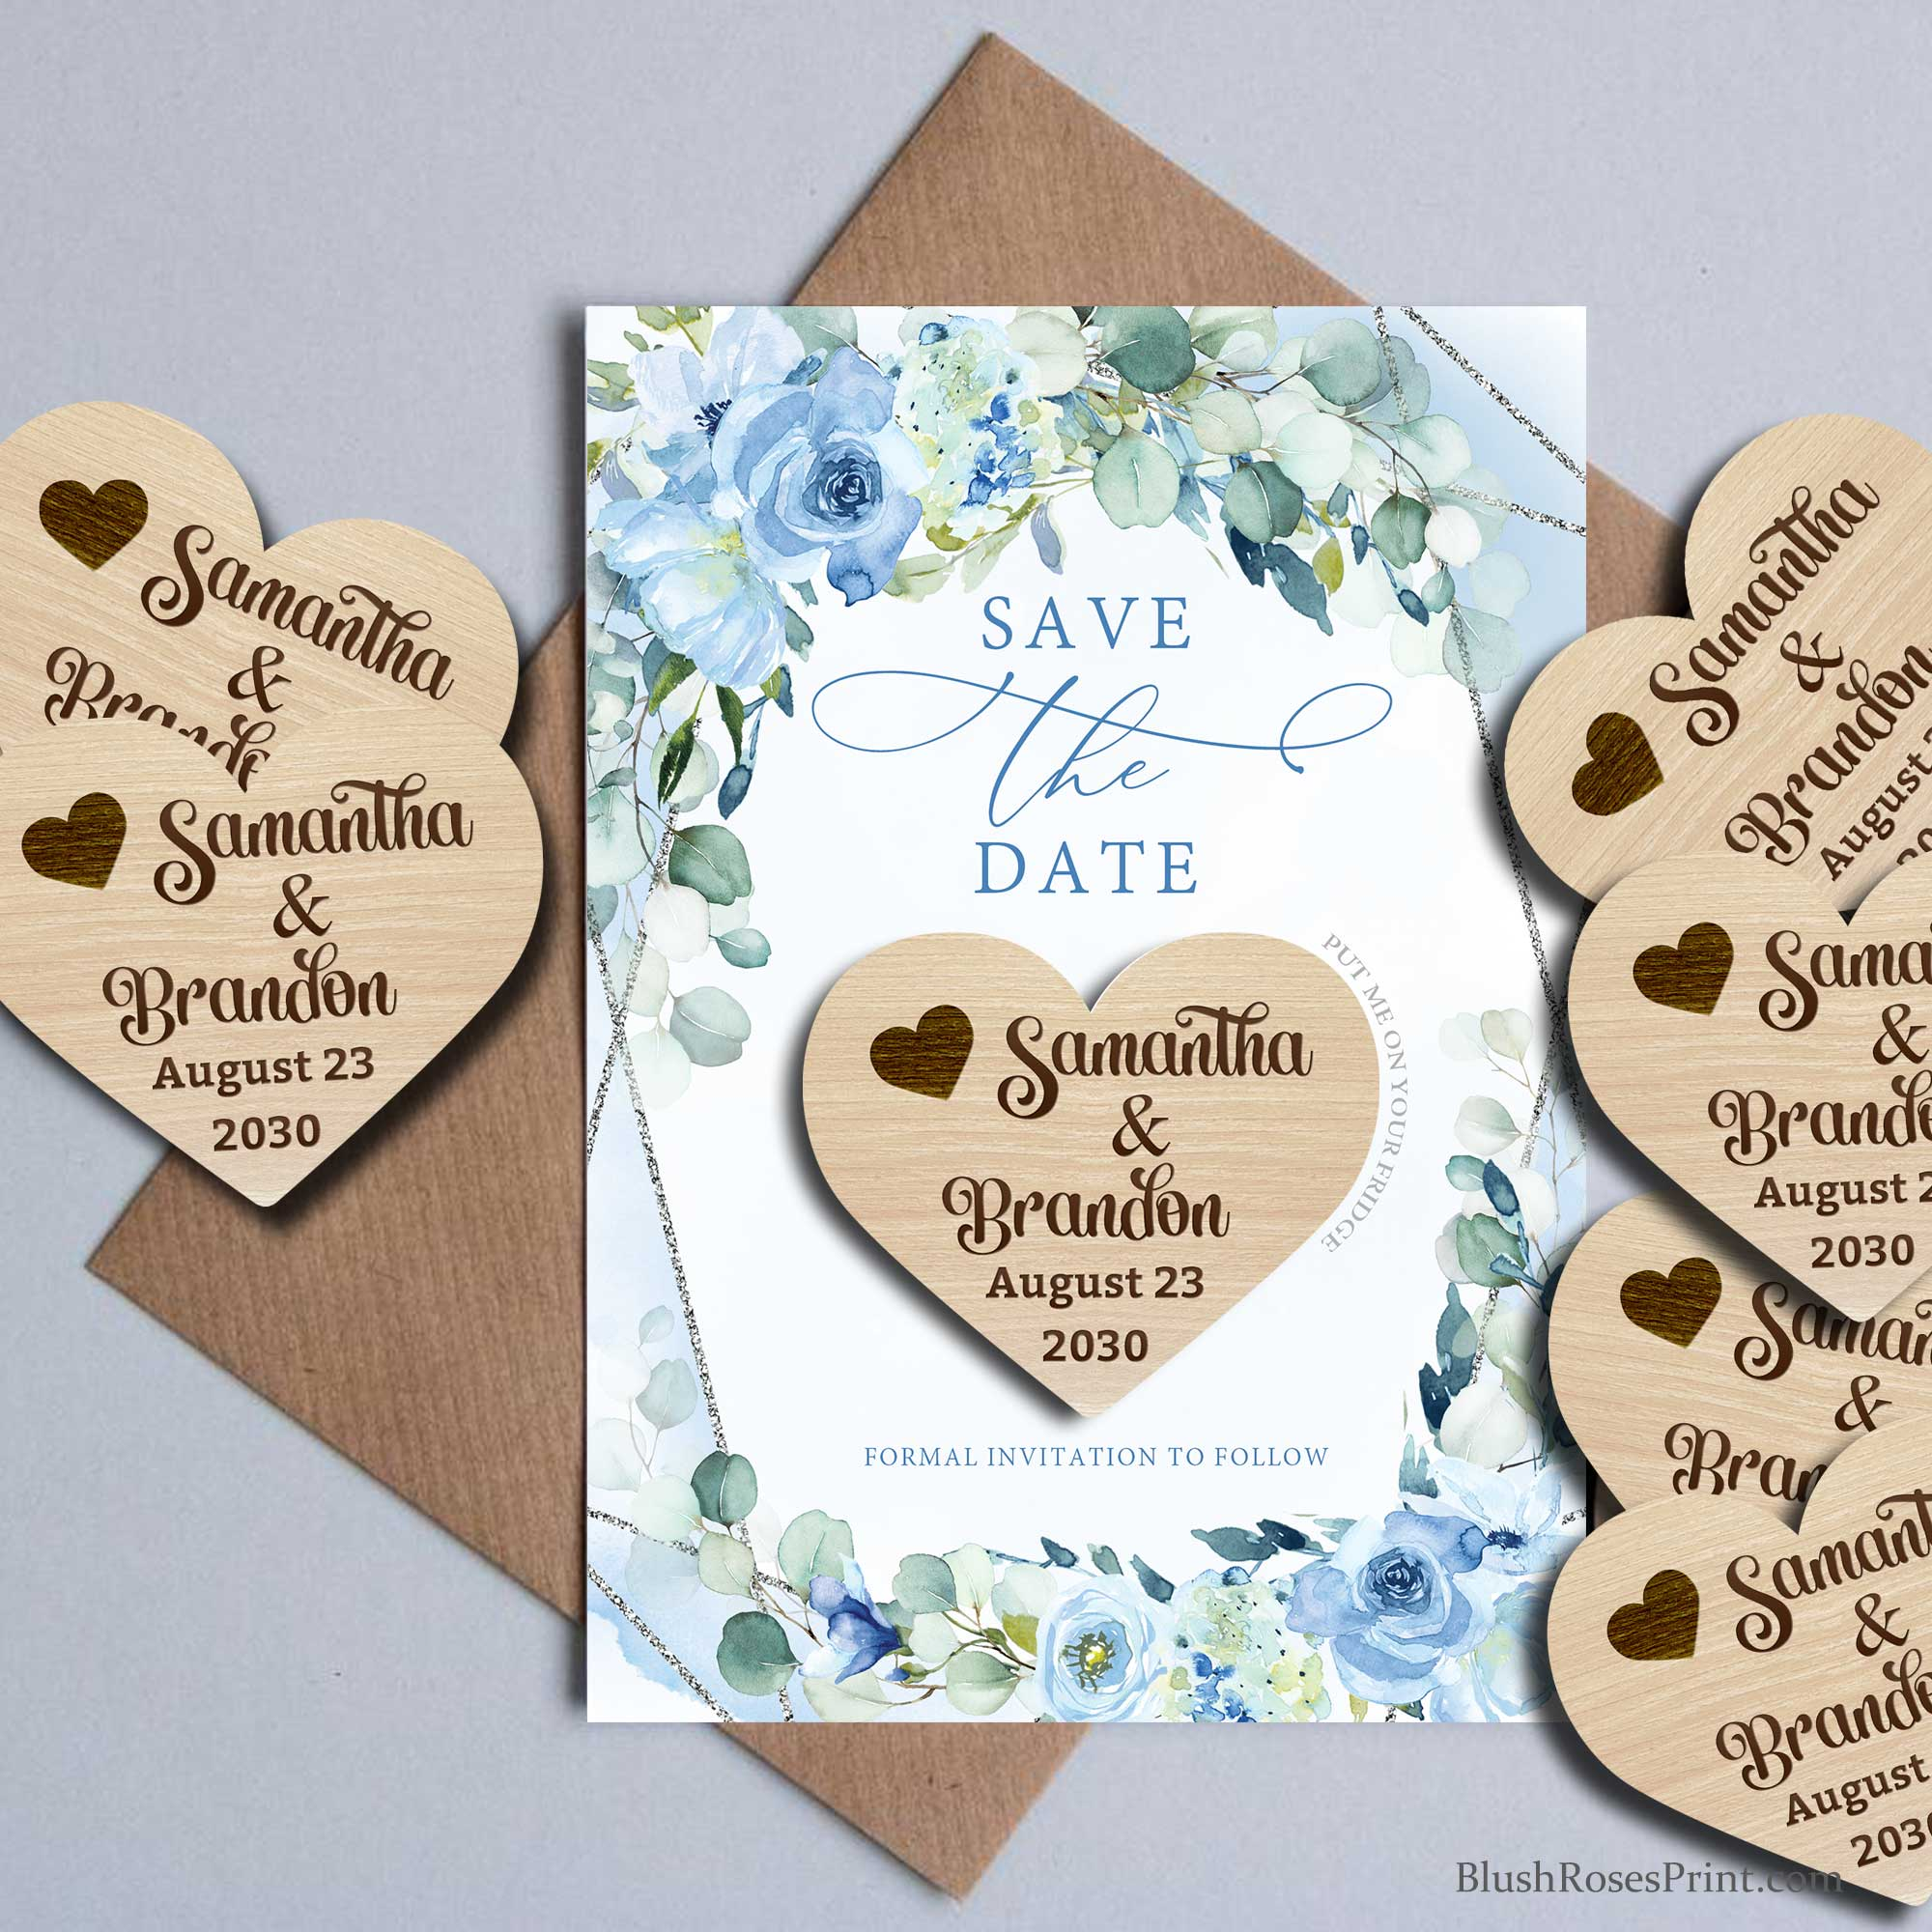 BLEIN - Blue Flowers Save the Date Card, Wooden Magnet Save The Date, Silver Geometric and Blue Flowers Wedding Save The Dates